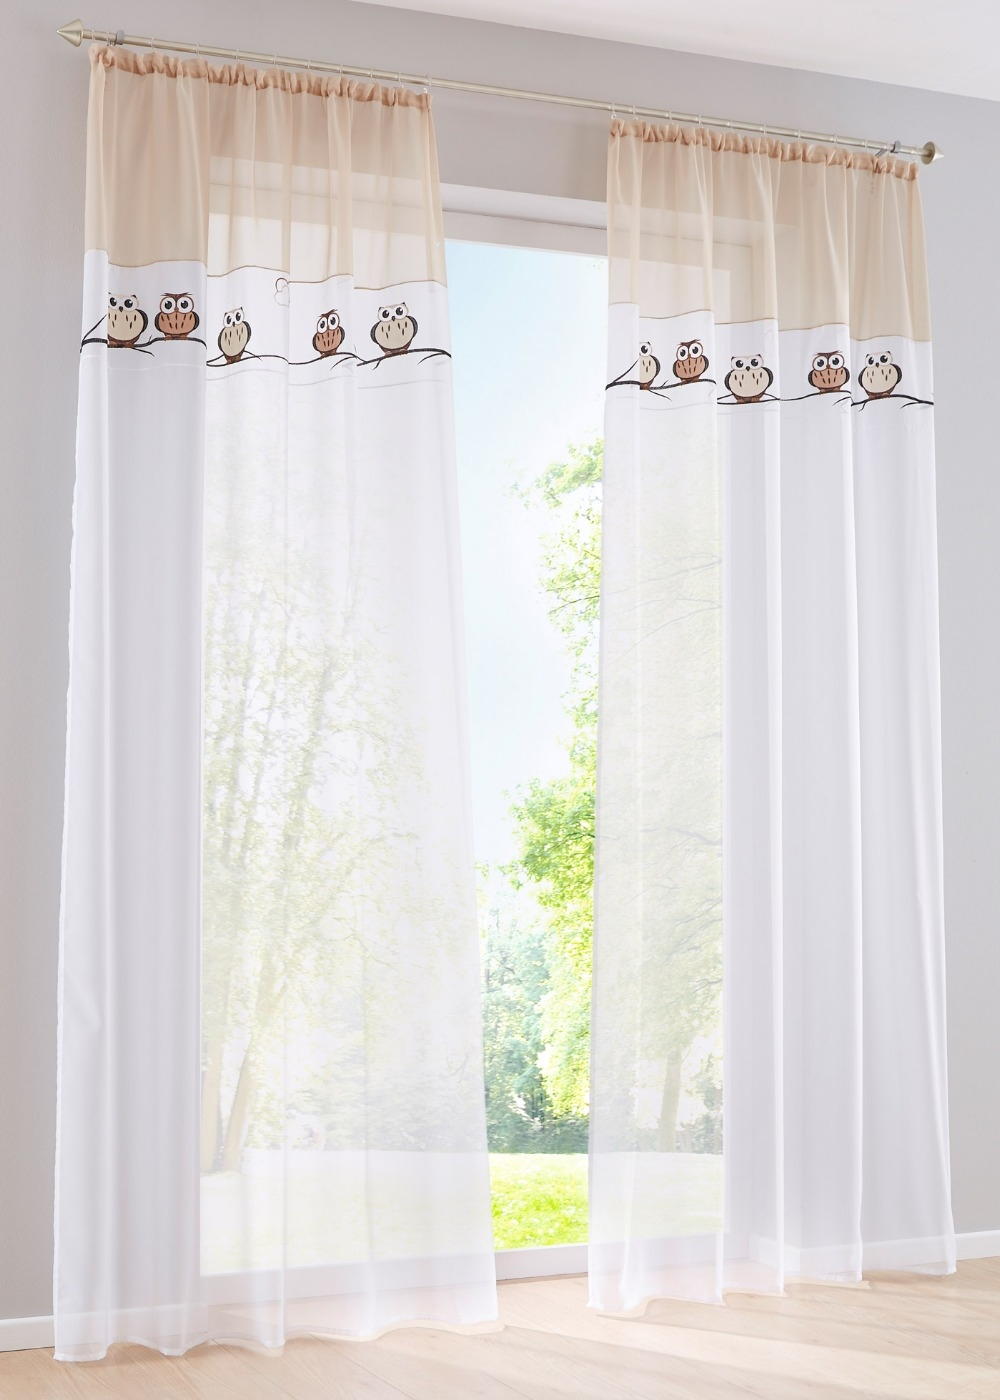 Popular Peach Colored Curtains Buy Cheap Peach Colored Curtains Intended For Peach Colored Curtains (Image 19 of 25)